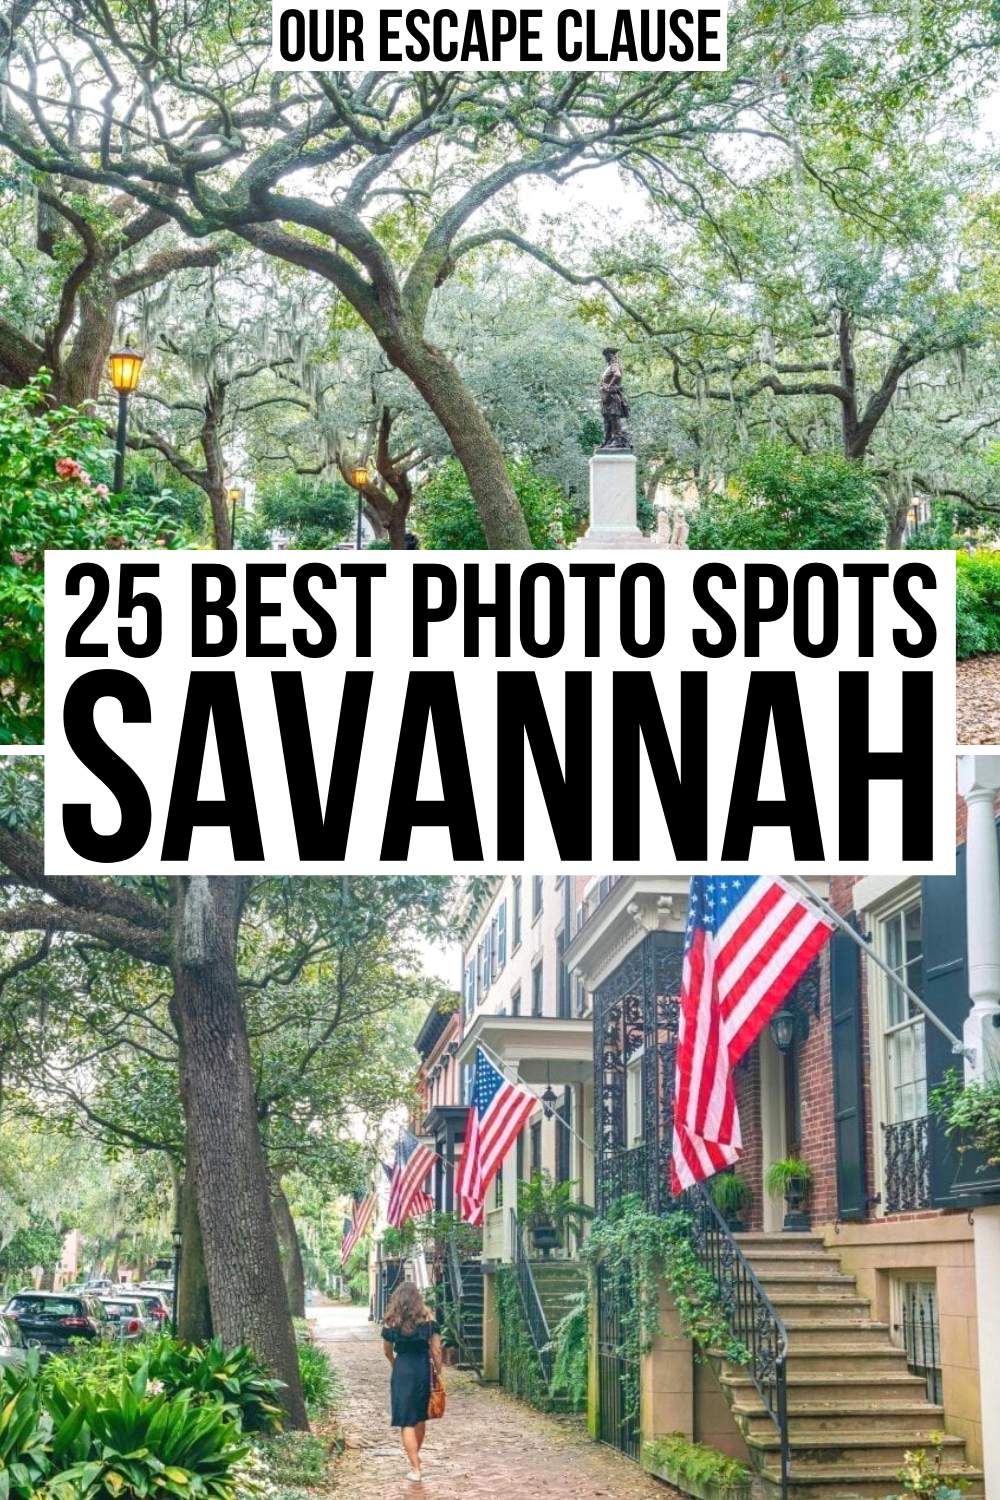 The 10 Most Photographed Places In Savannah Savannah Chat Savannah Georgia Vacation Georgia Vacation